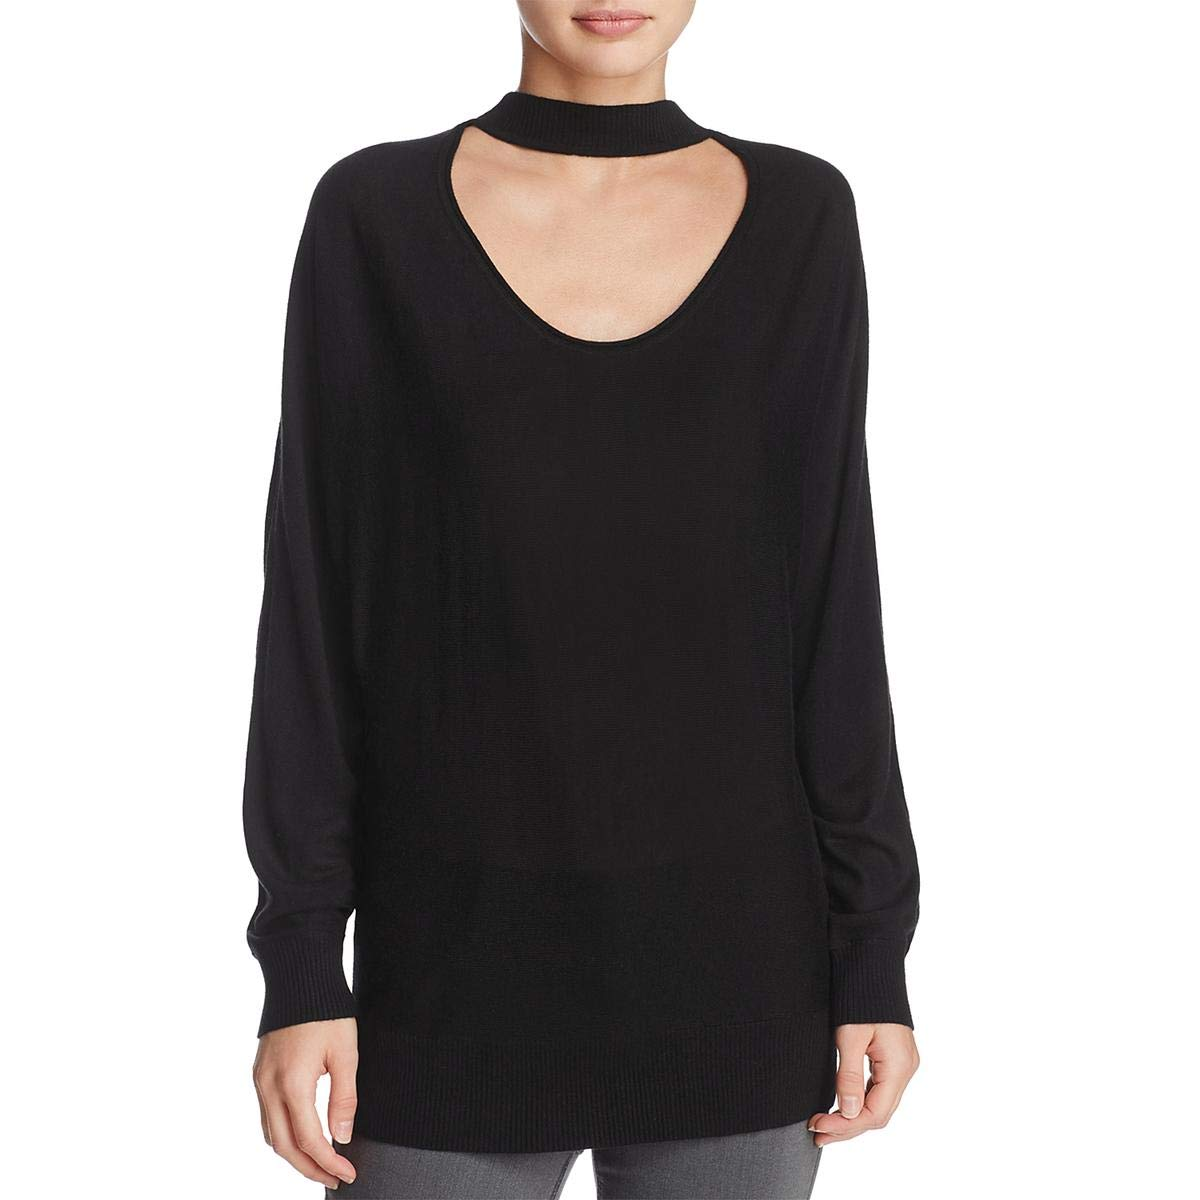 Splendid Women's Kenton Reversible Sweater, Black, S